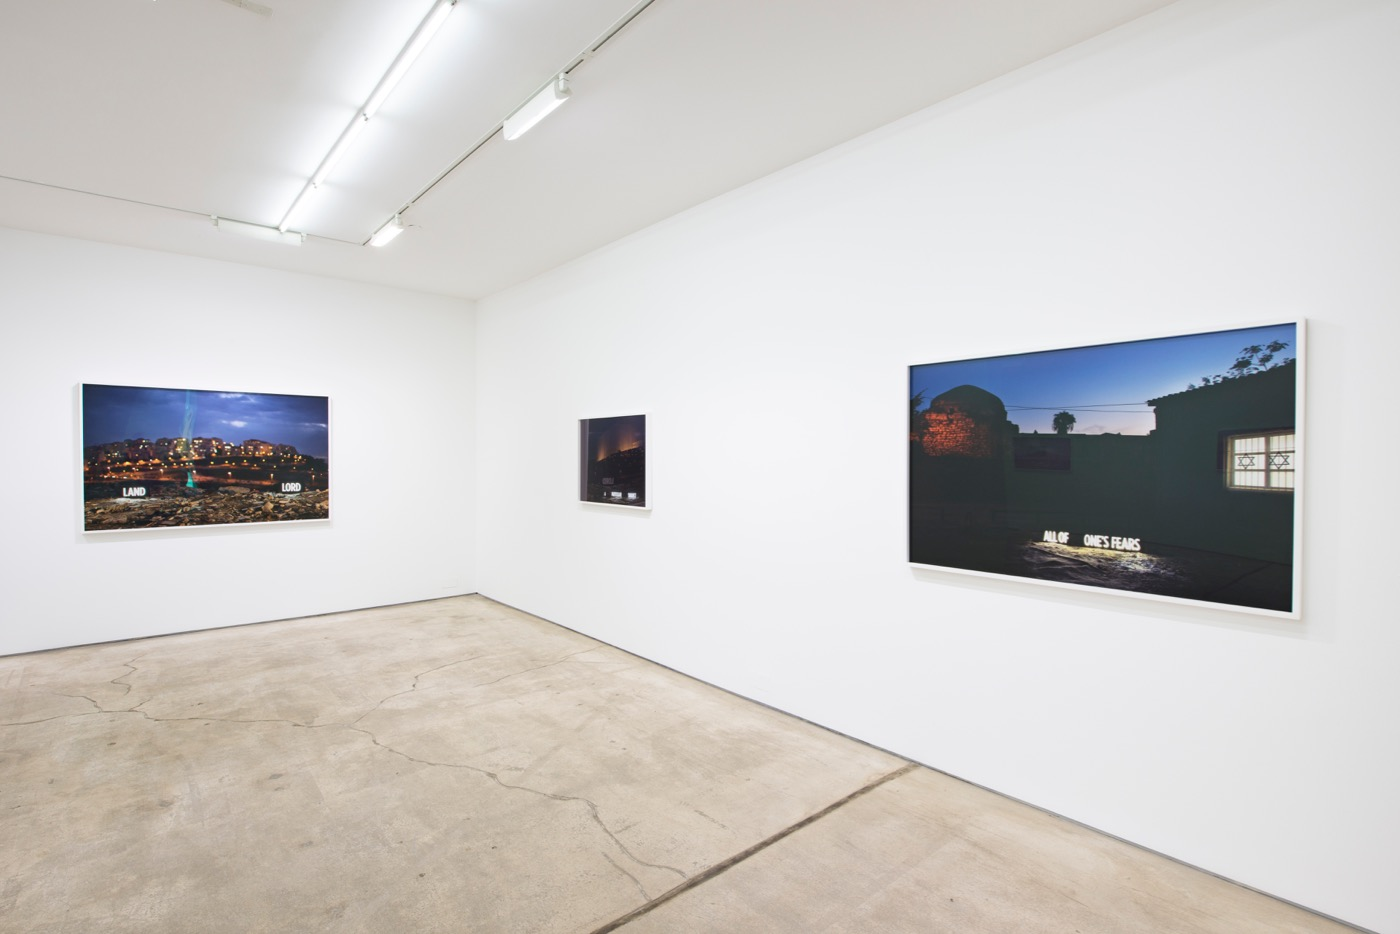 Shimon Attie, Facts on the Ground (2016) installation view. Courtesy of the artist and Jack Shainman Gallery